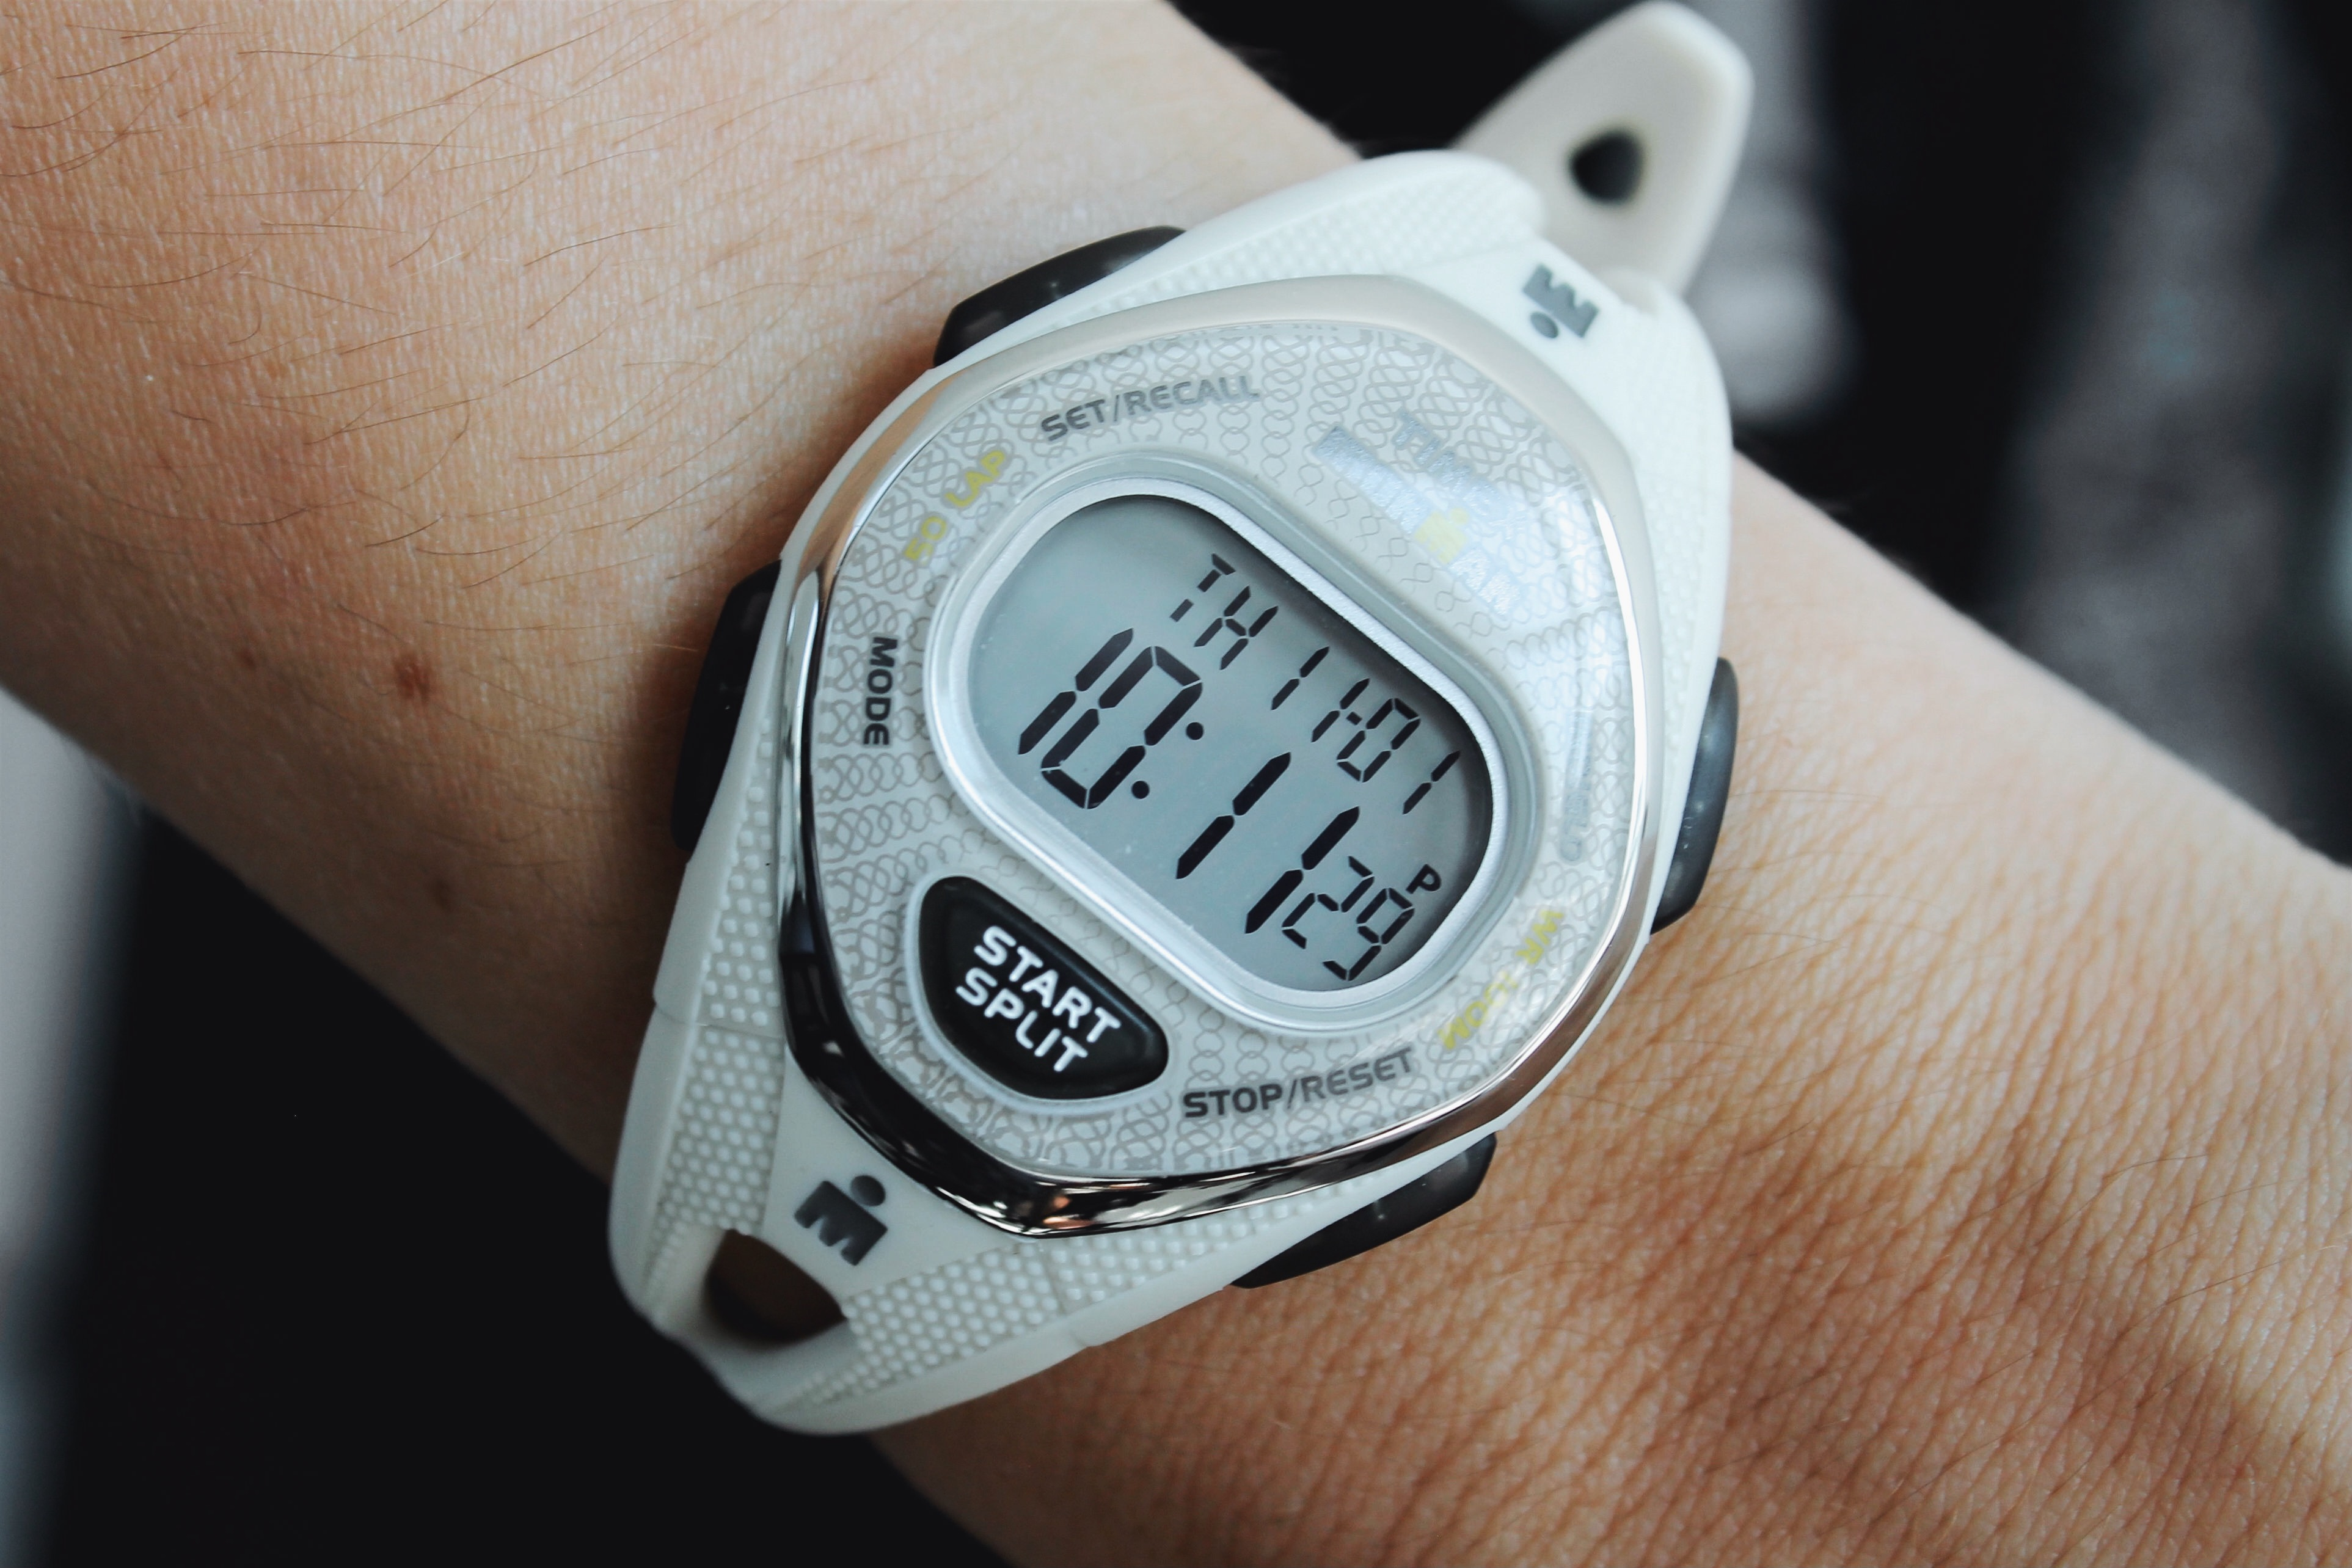 Timex Ironman Sport Watches for Men and Women at Best Buy Canada